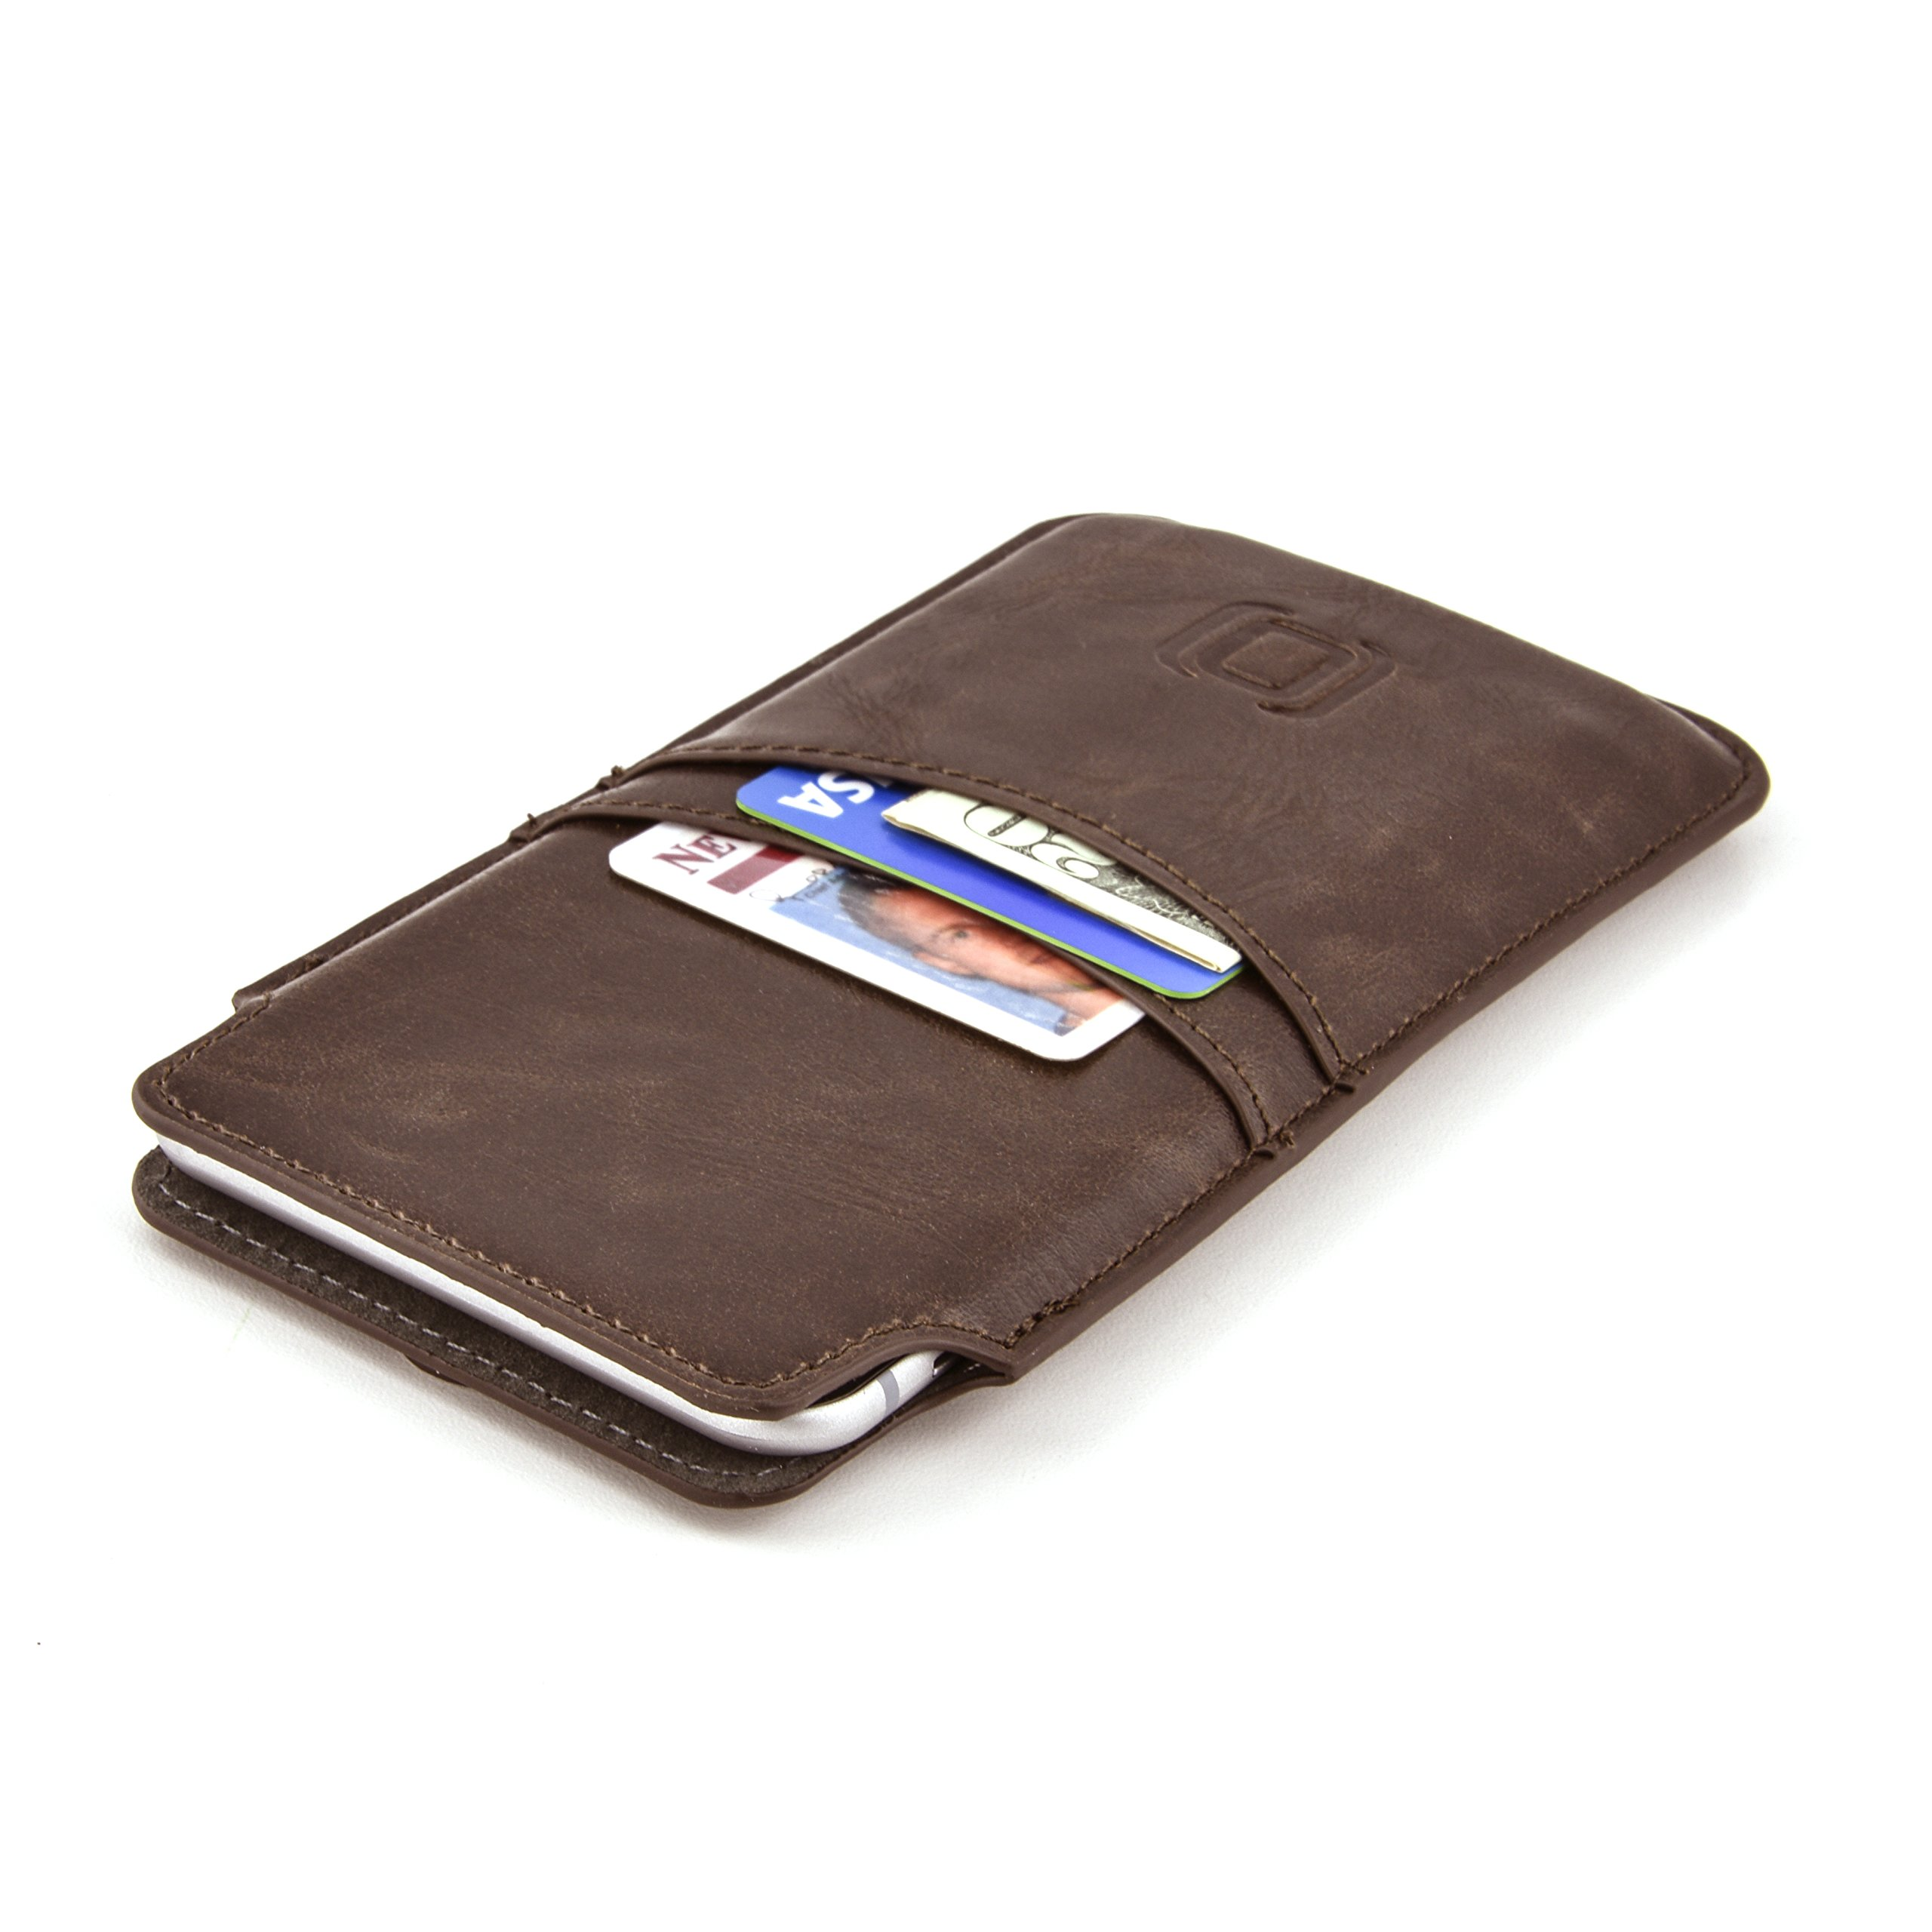 Dockem Provincial Wallet Sleeve for iPhone SE 2020, 8, 7, 6S and 6 - Vintage Synthetic Leather Card Case: Ultra Slim Professional Executive Pouch Cover with 2 Card Holder Slots, Brown